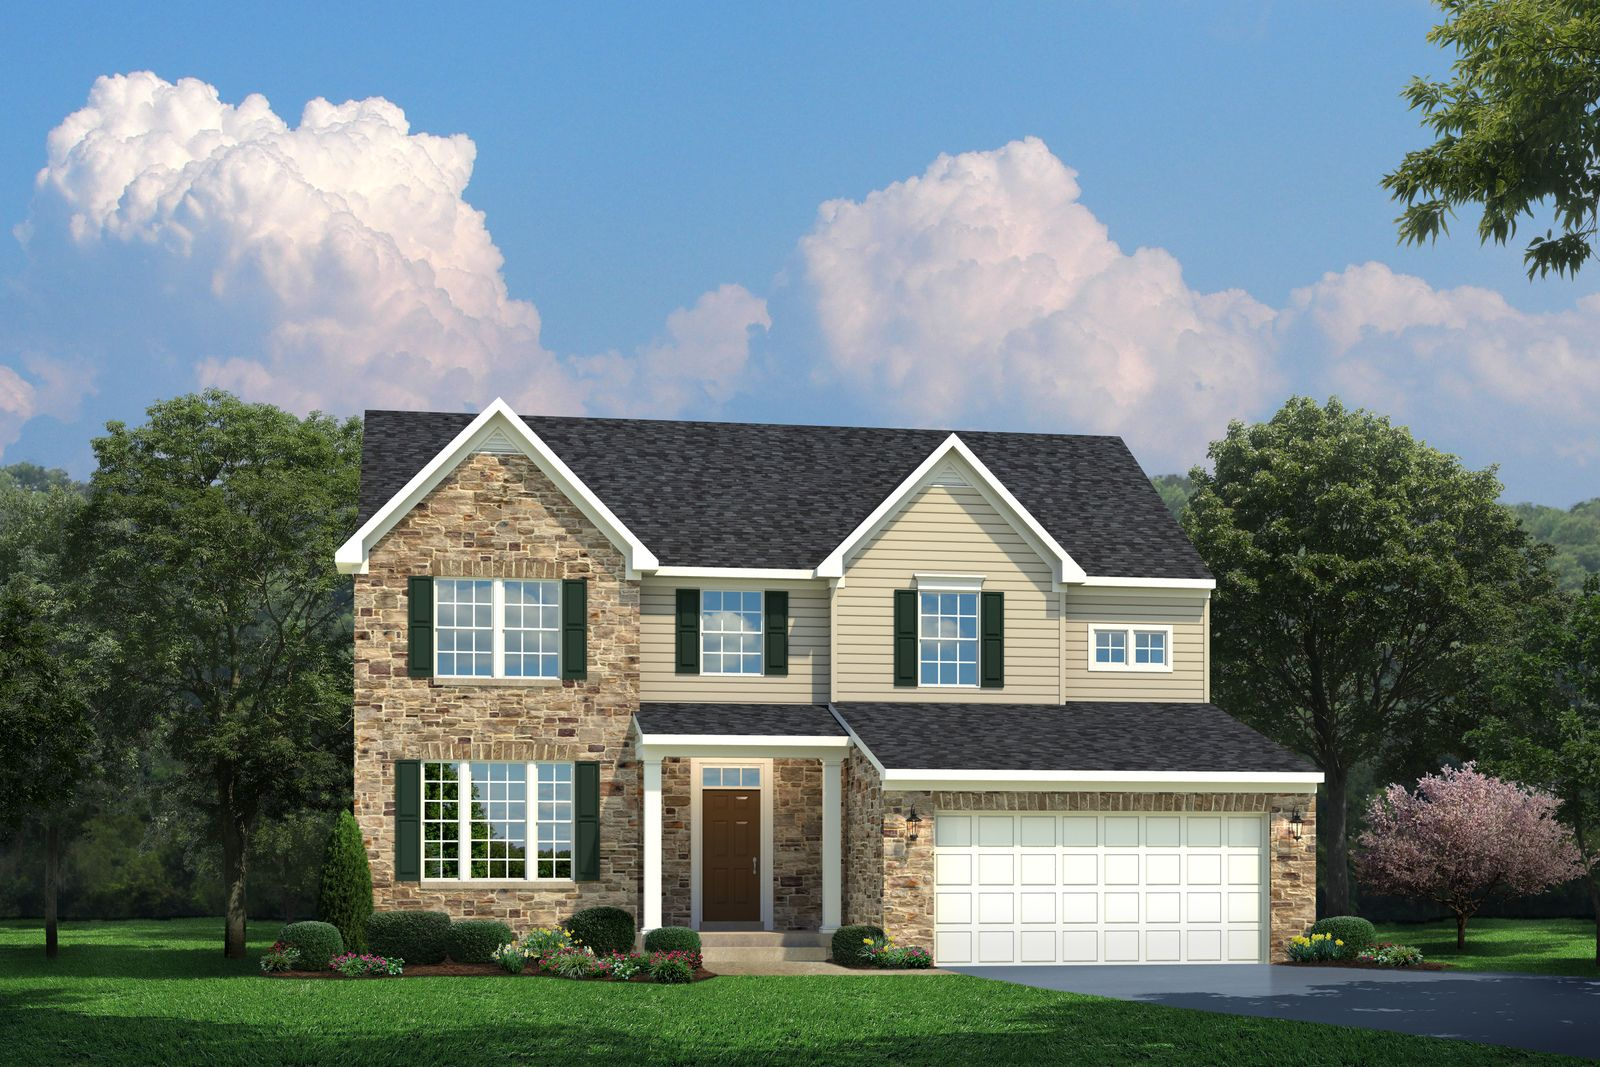 Single Family for Sale at Stonebridge Estates - Dunkirk Casey Road & Youngs Road Buffalo, New York 14227 United States